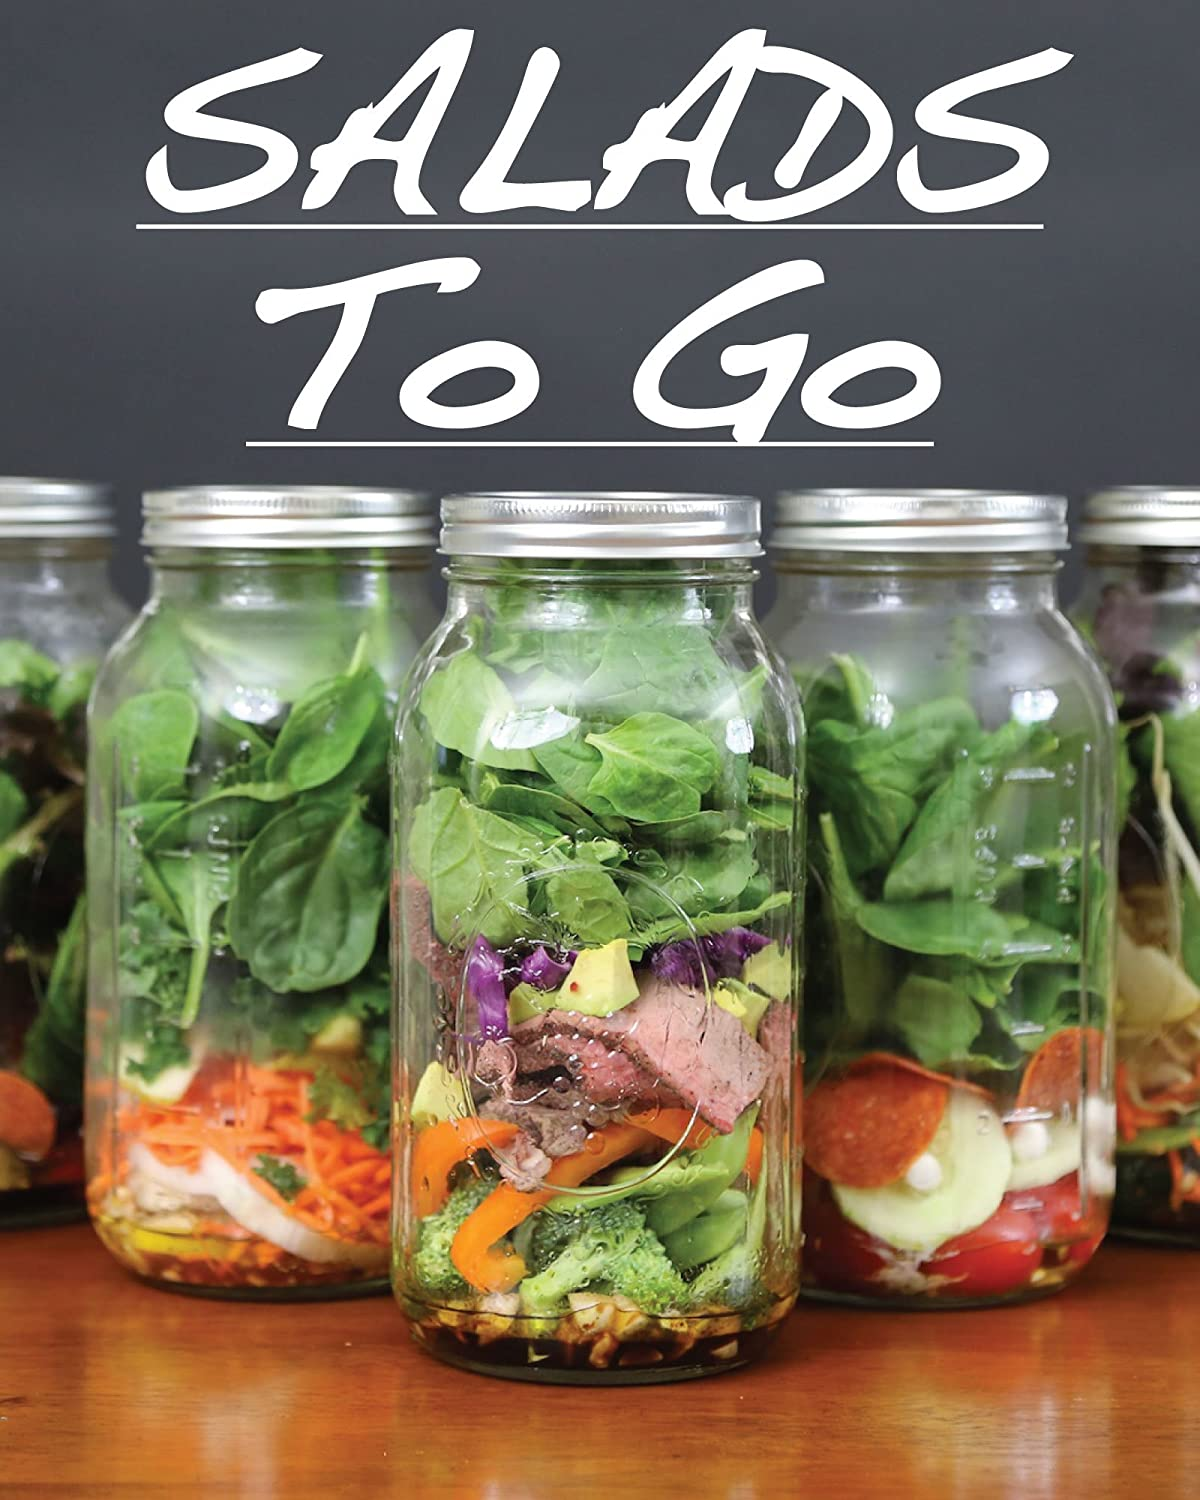 Salads To Go